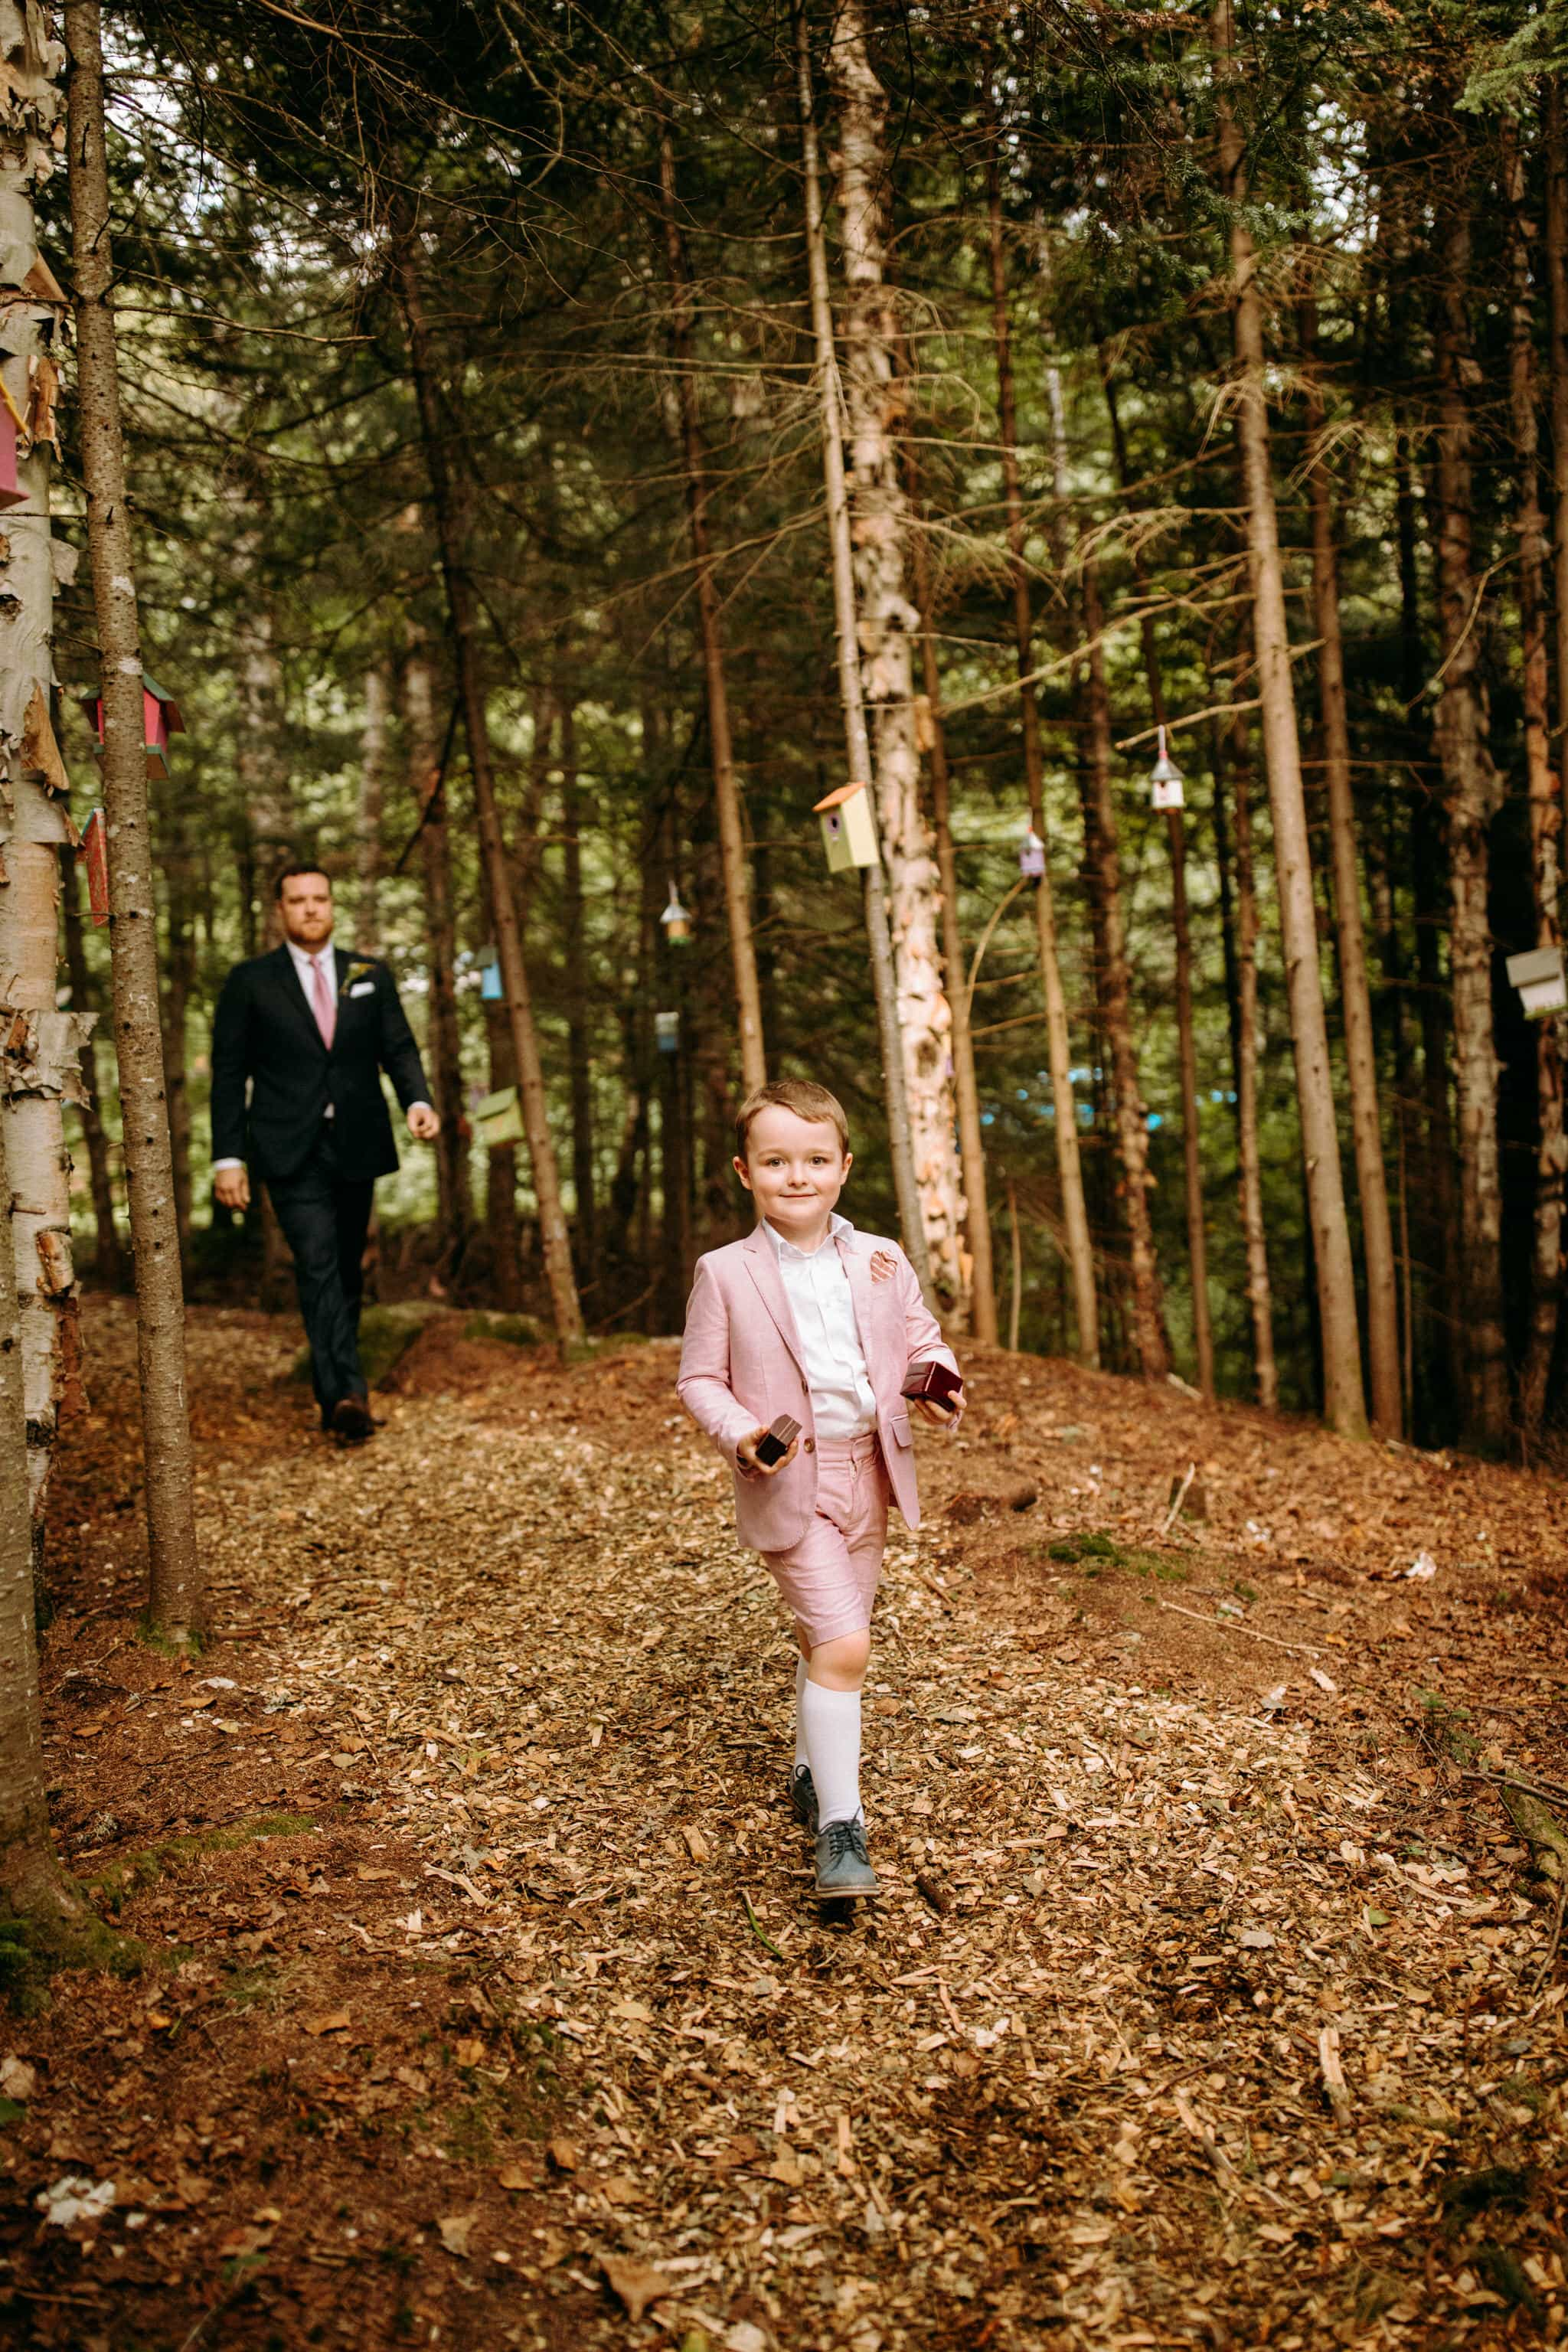 Intimate Wedding in Ivry-sur-le-Lac - Ring bearer in the forest - Wedding Photographer Brent Calis